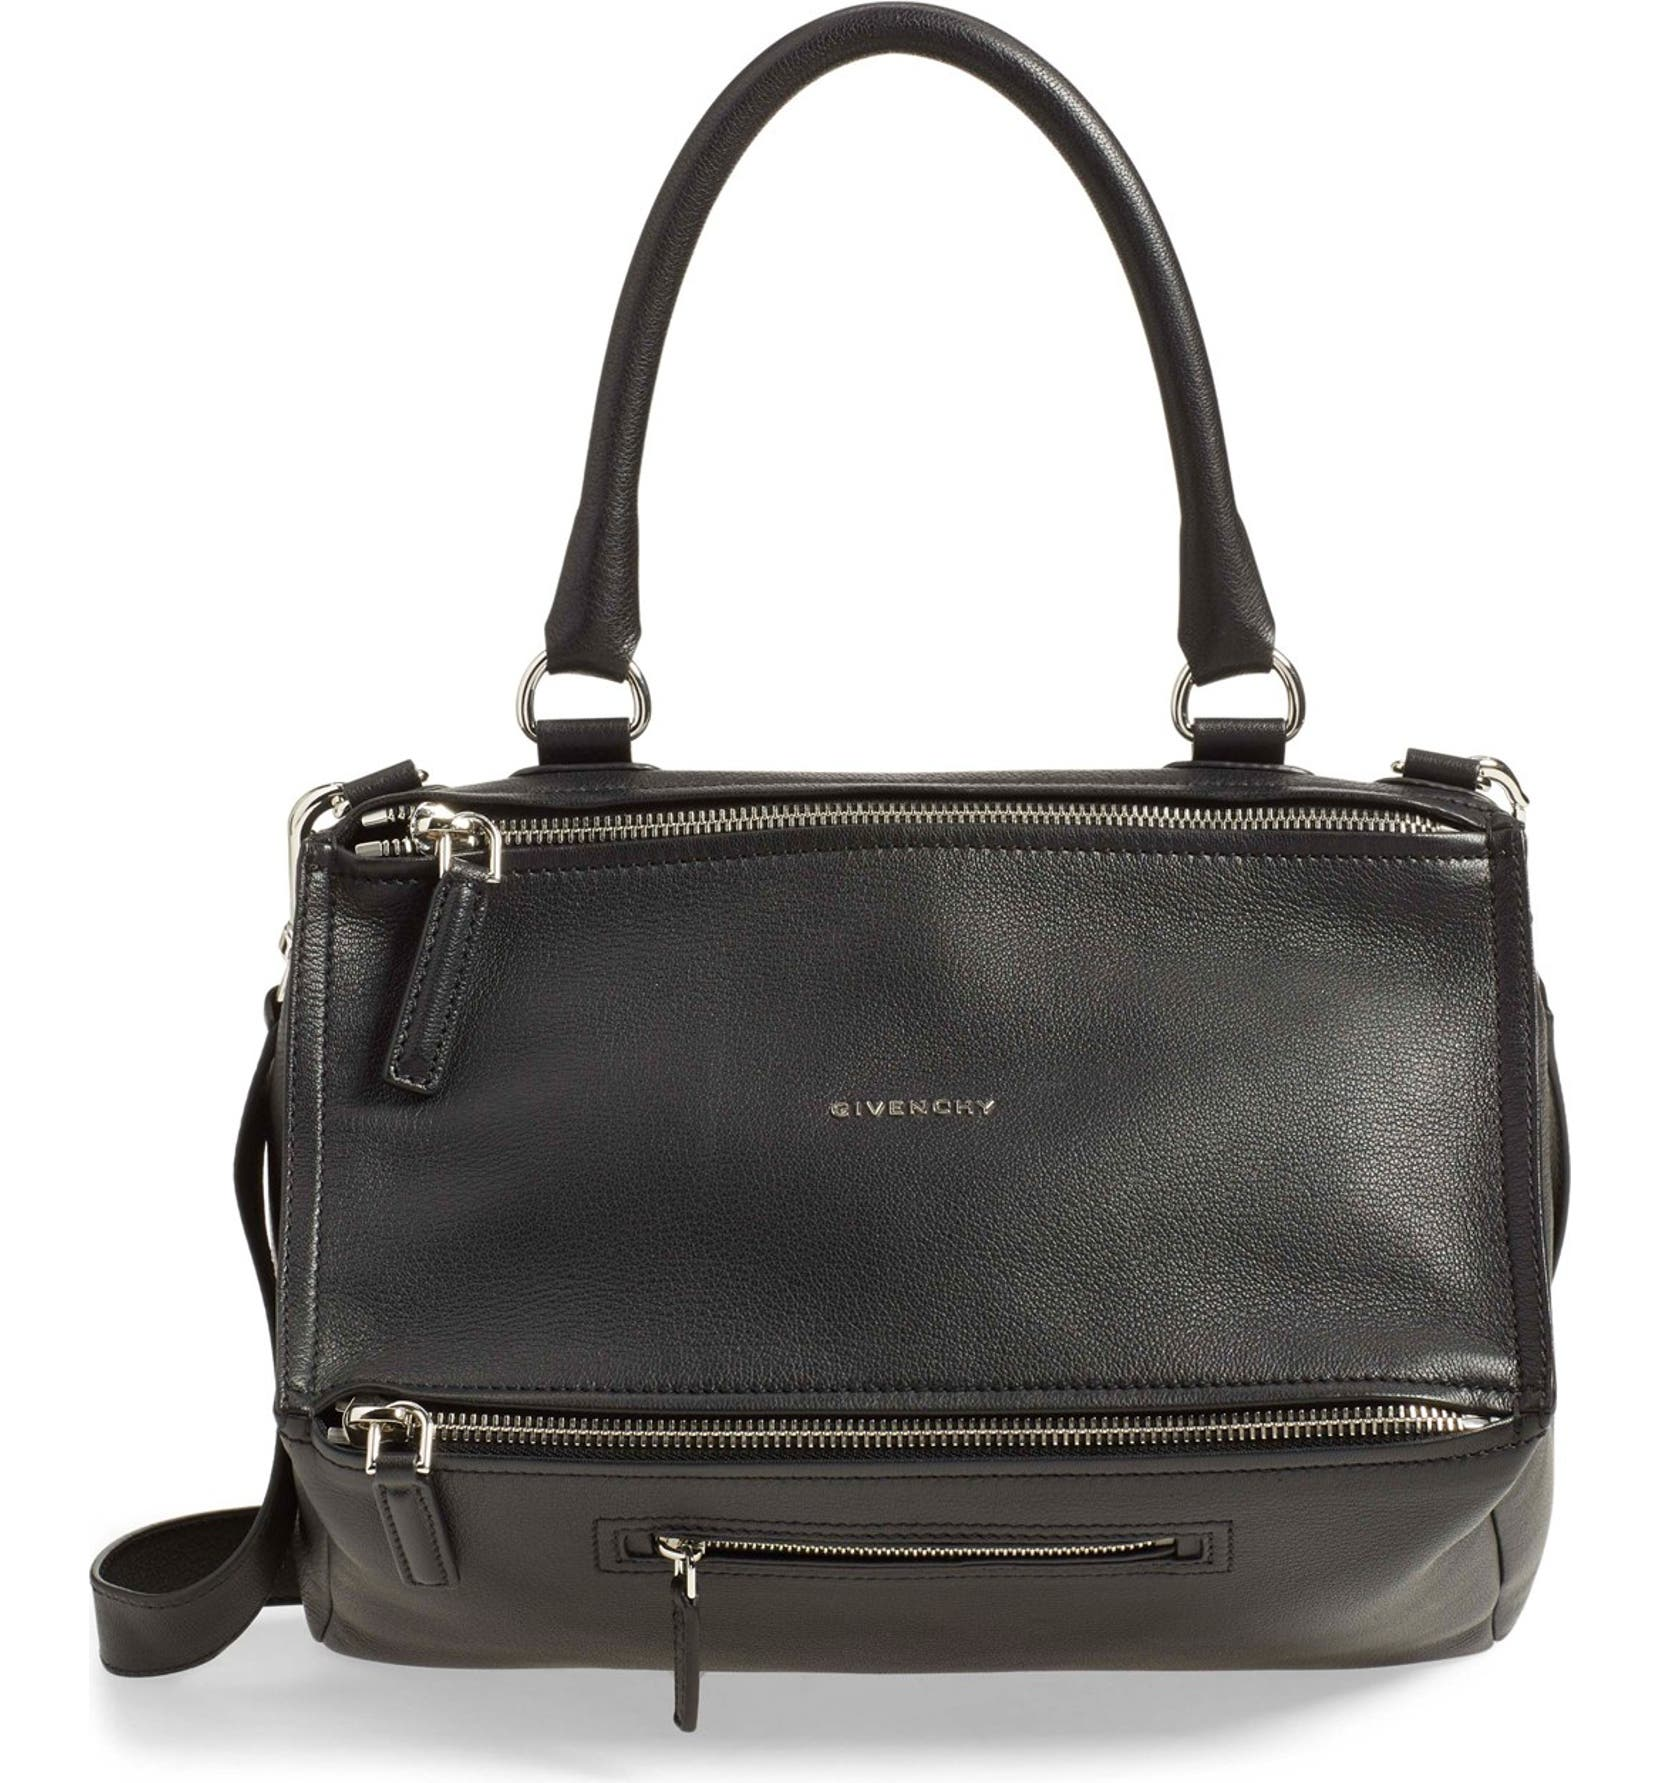 1b7a9bb3e6 Givenchy 'Medium Pandora' Sugar Leather Satchel | Nordstrom